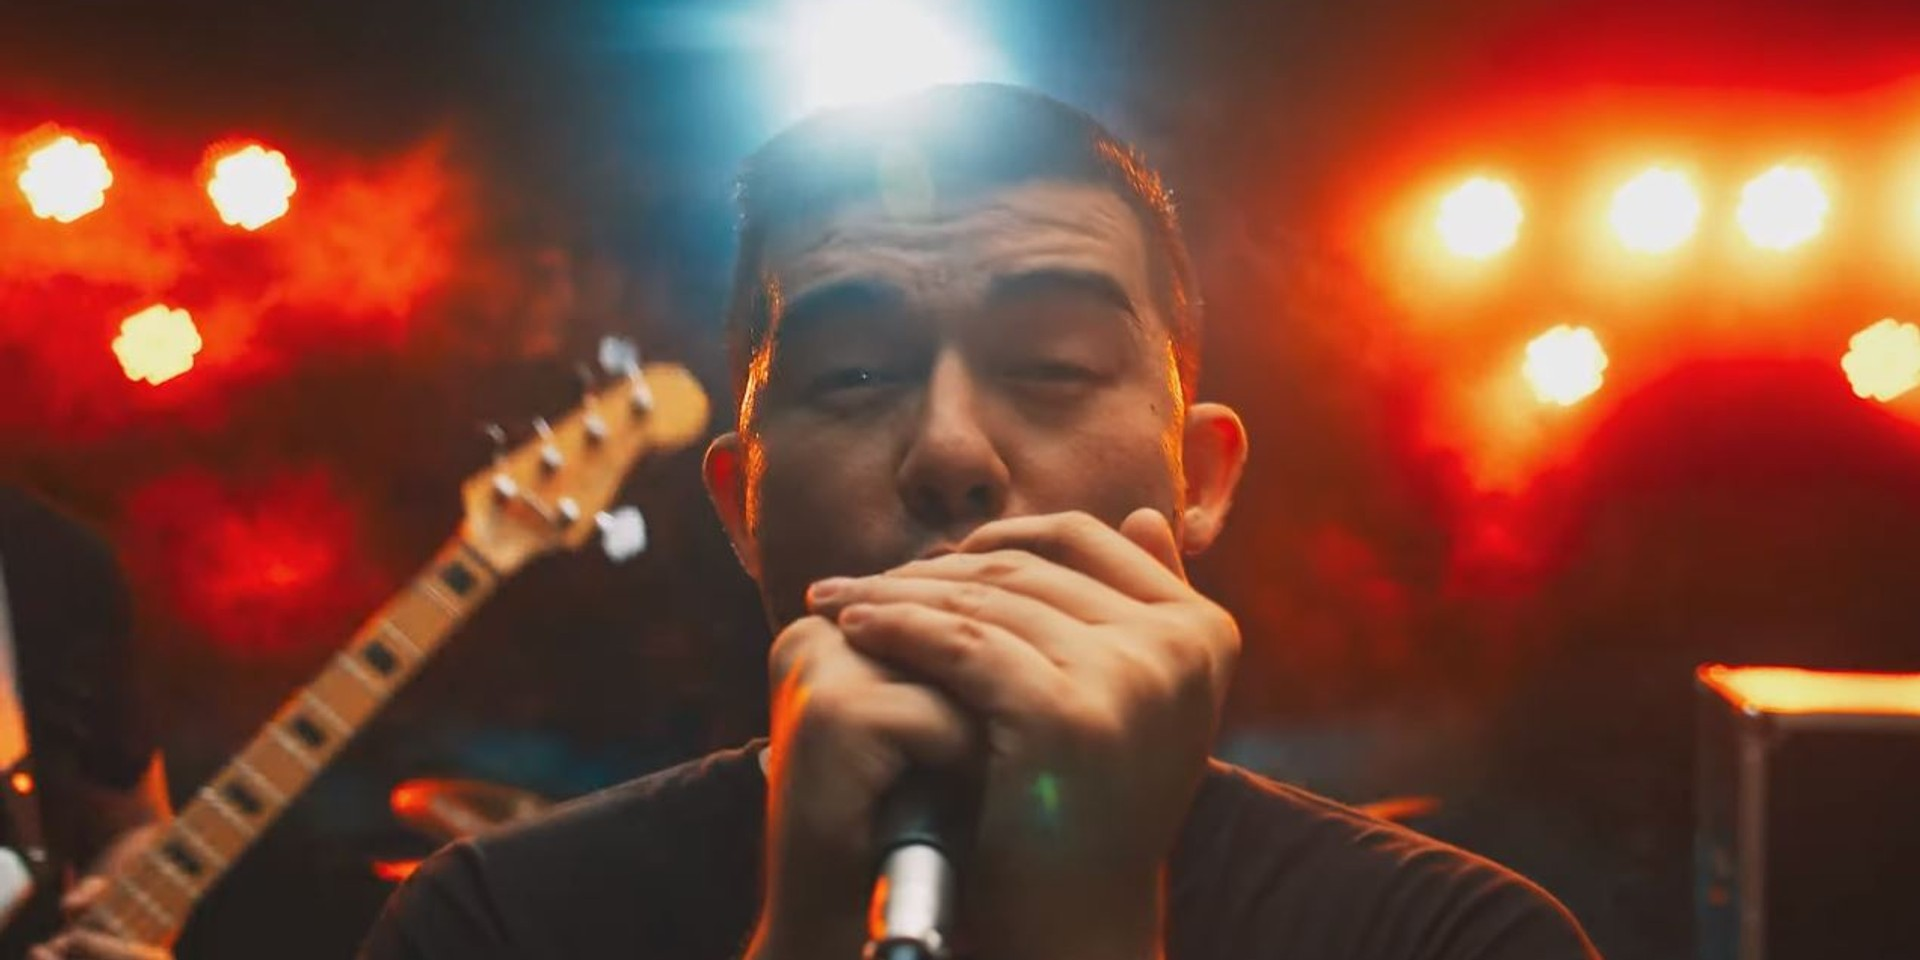 Hale unveil new 'My Beating Heart' music video – watch